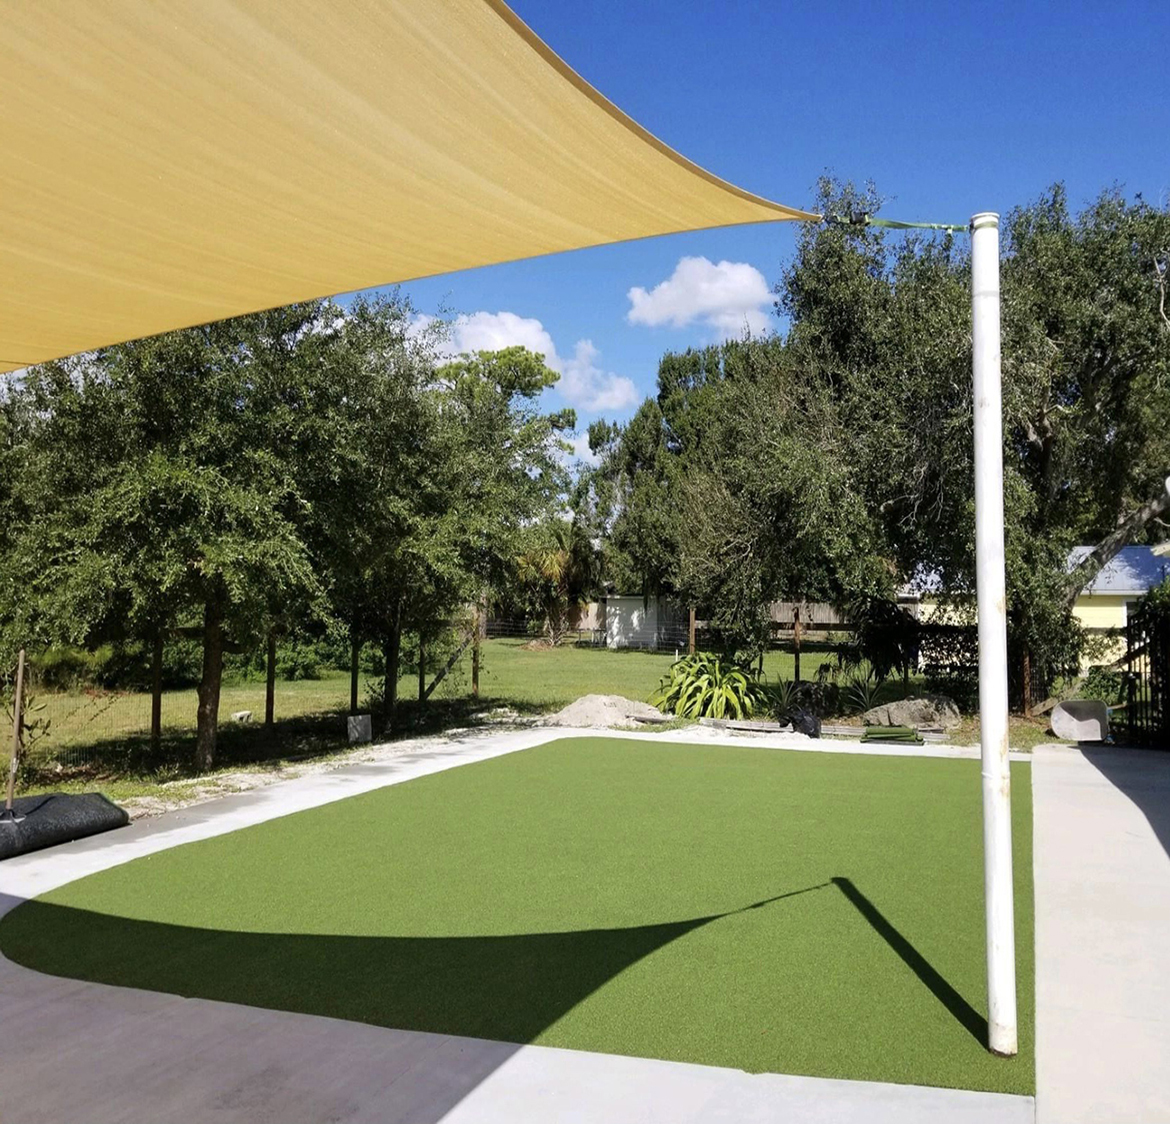 Wollongong synthetic grass for lawn